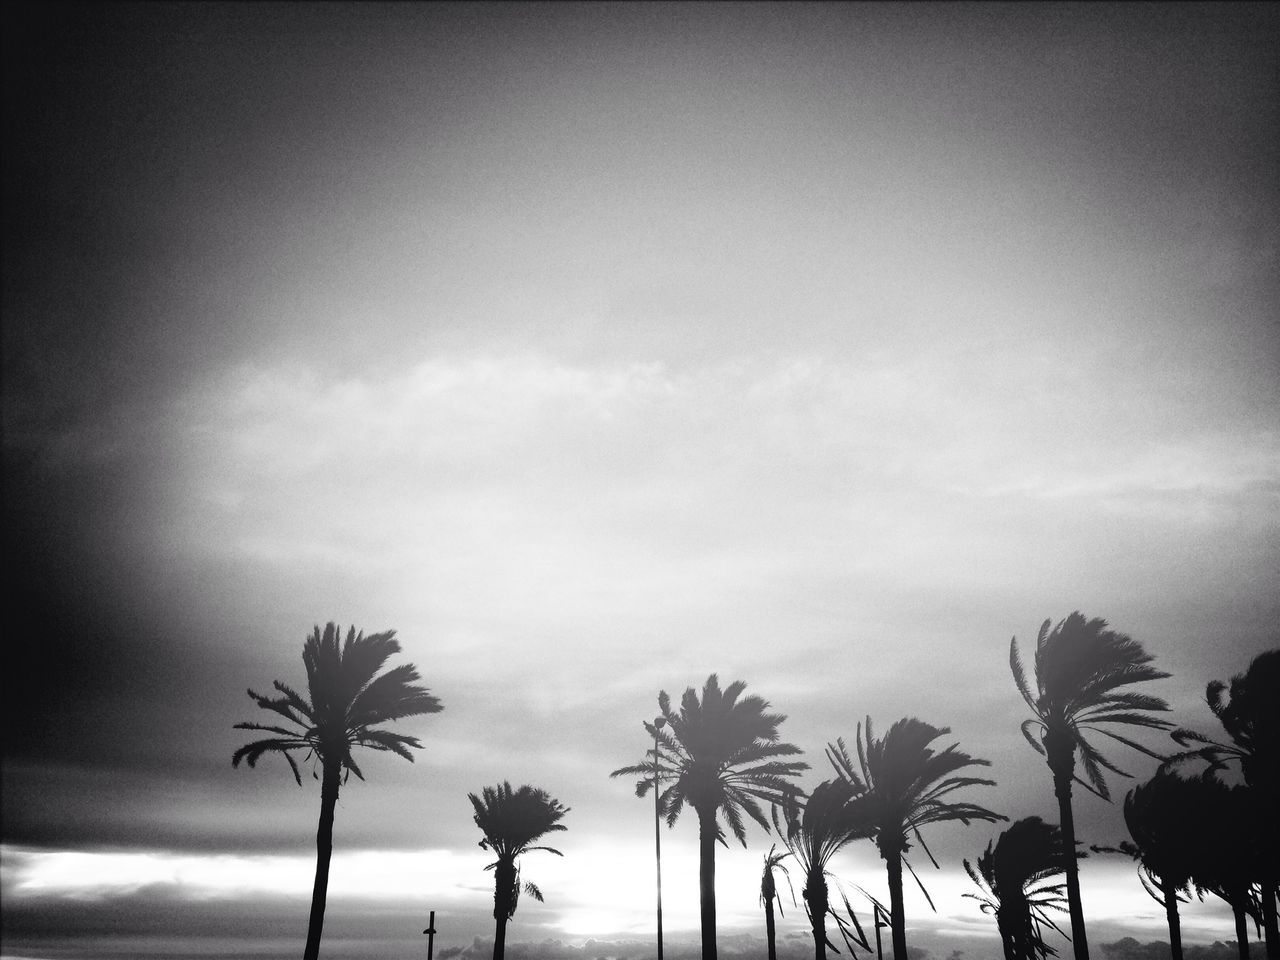 Silhouettes Of Palm Trees During Windy Weather